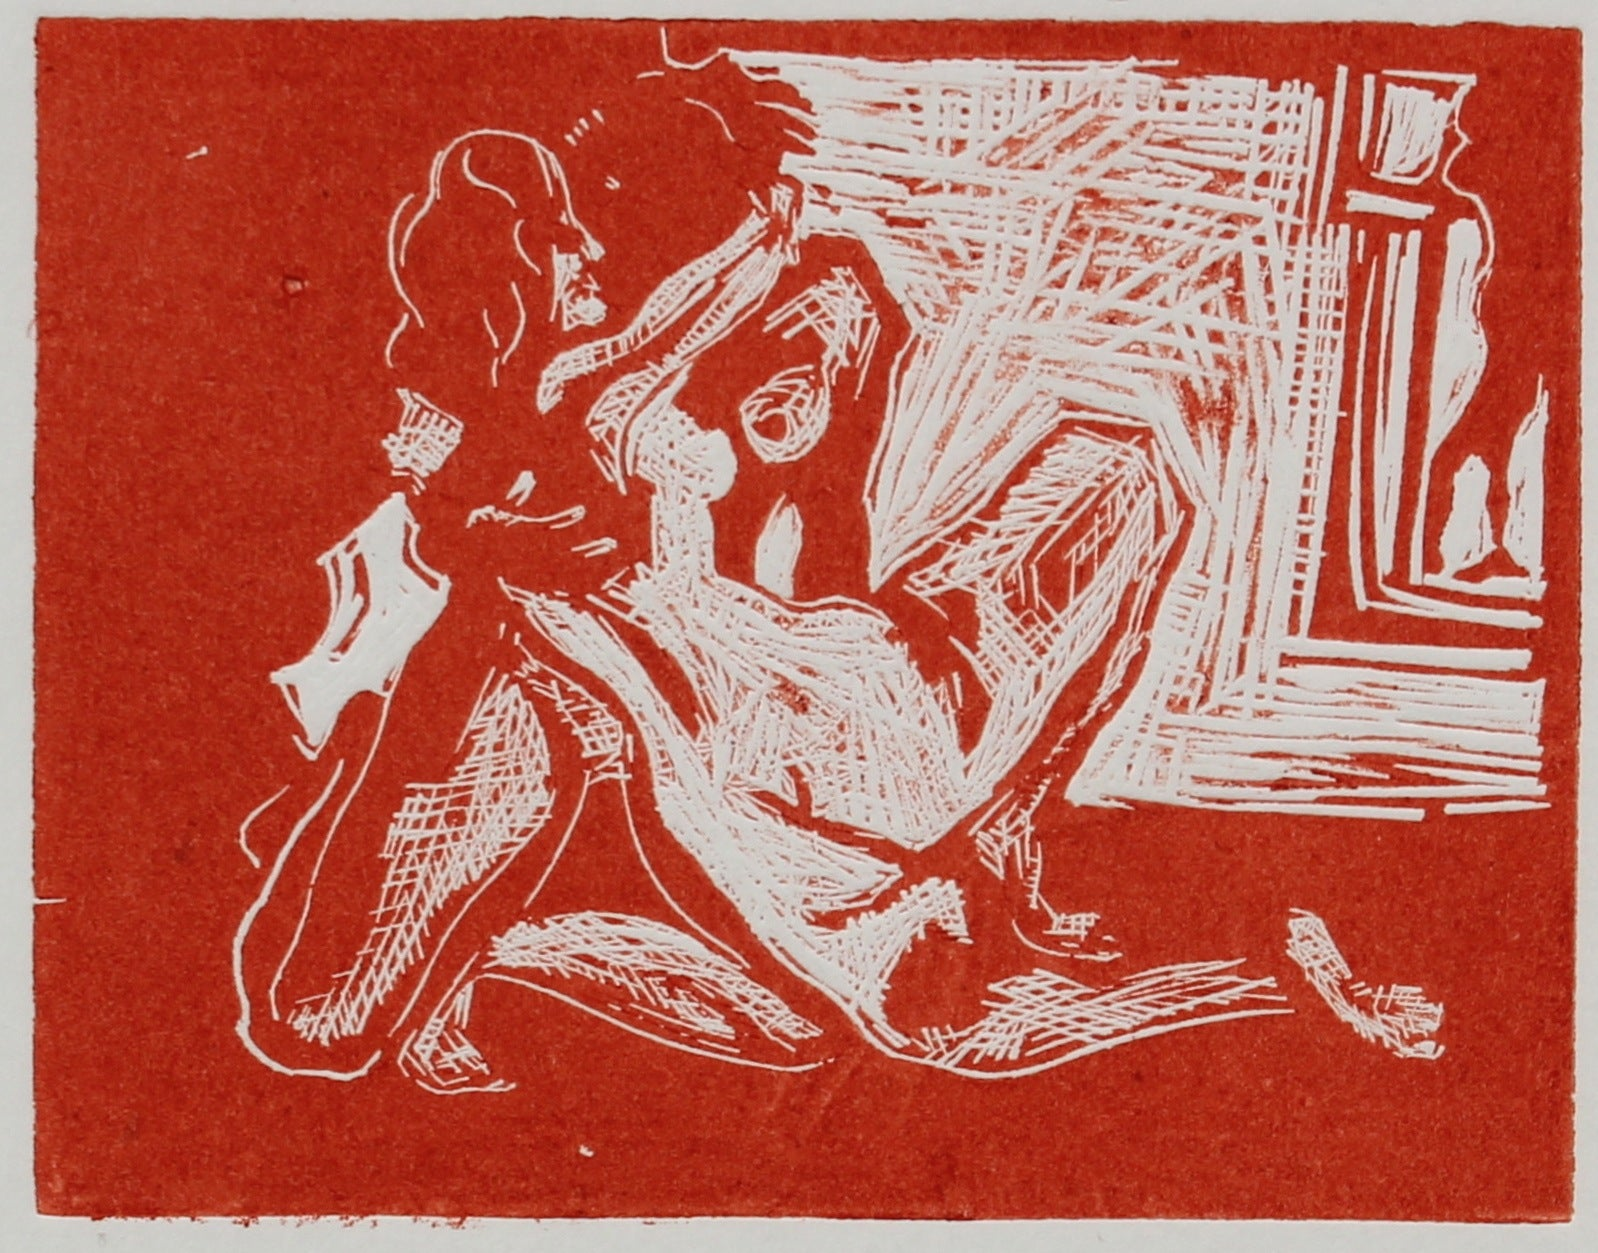 Howard Albert Printmaking - Lost Art Salon